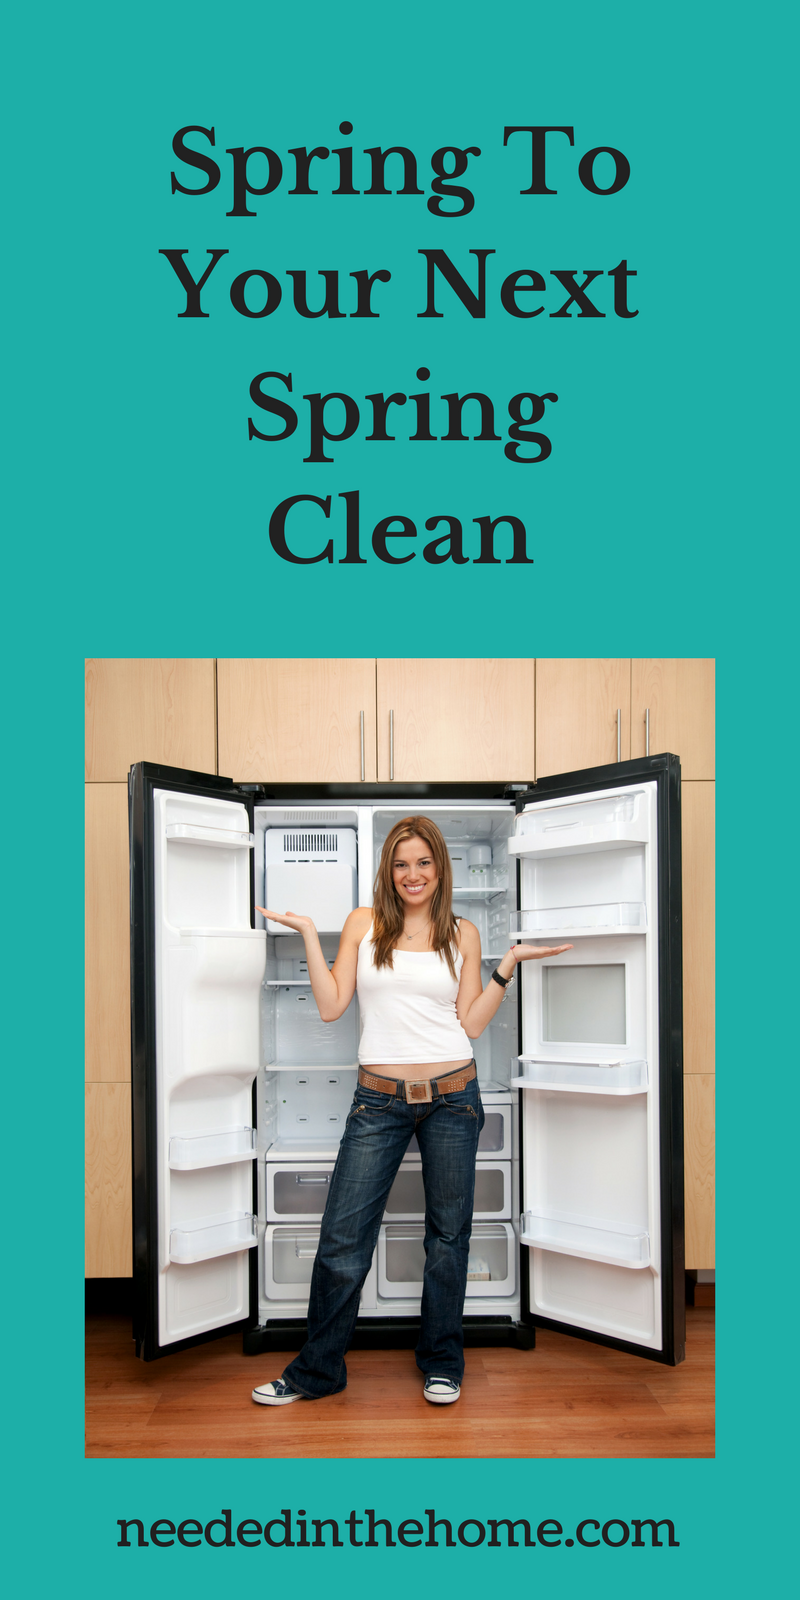 woman cleaned a refrigerator Spring To Your Next Spring Clean neededinthehome.com